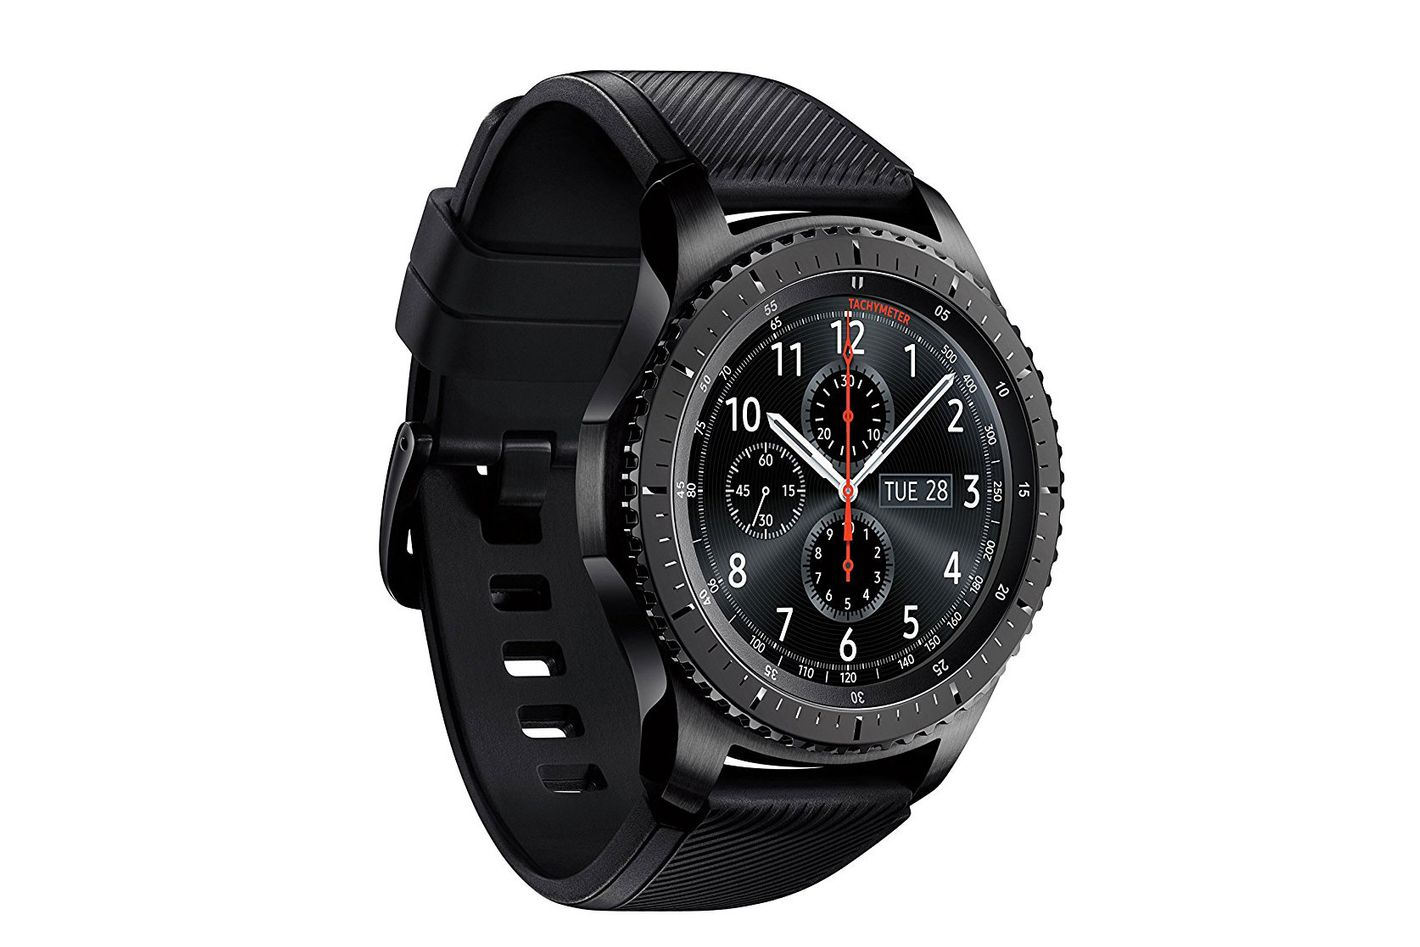 Samsung Gear S3 Frontier at Amazon